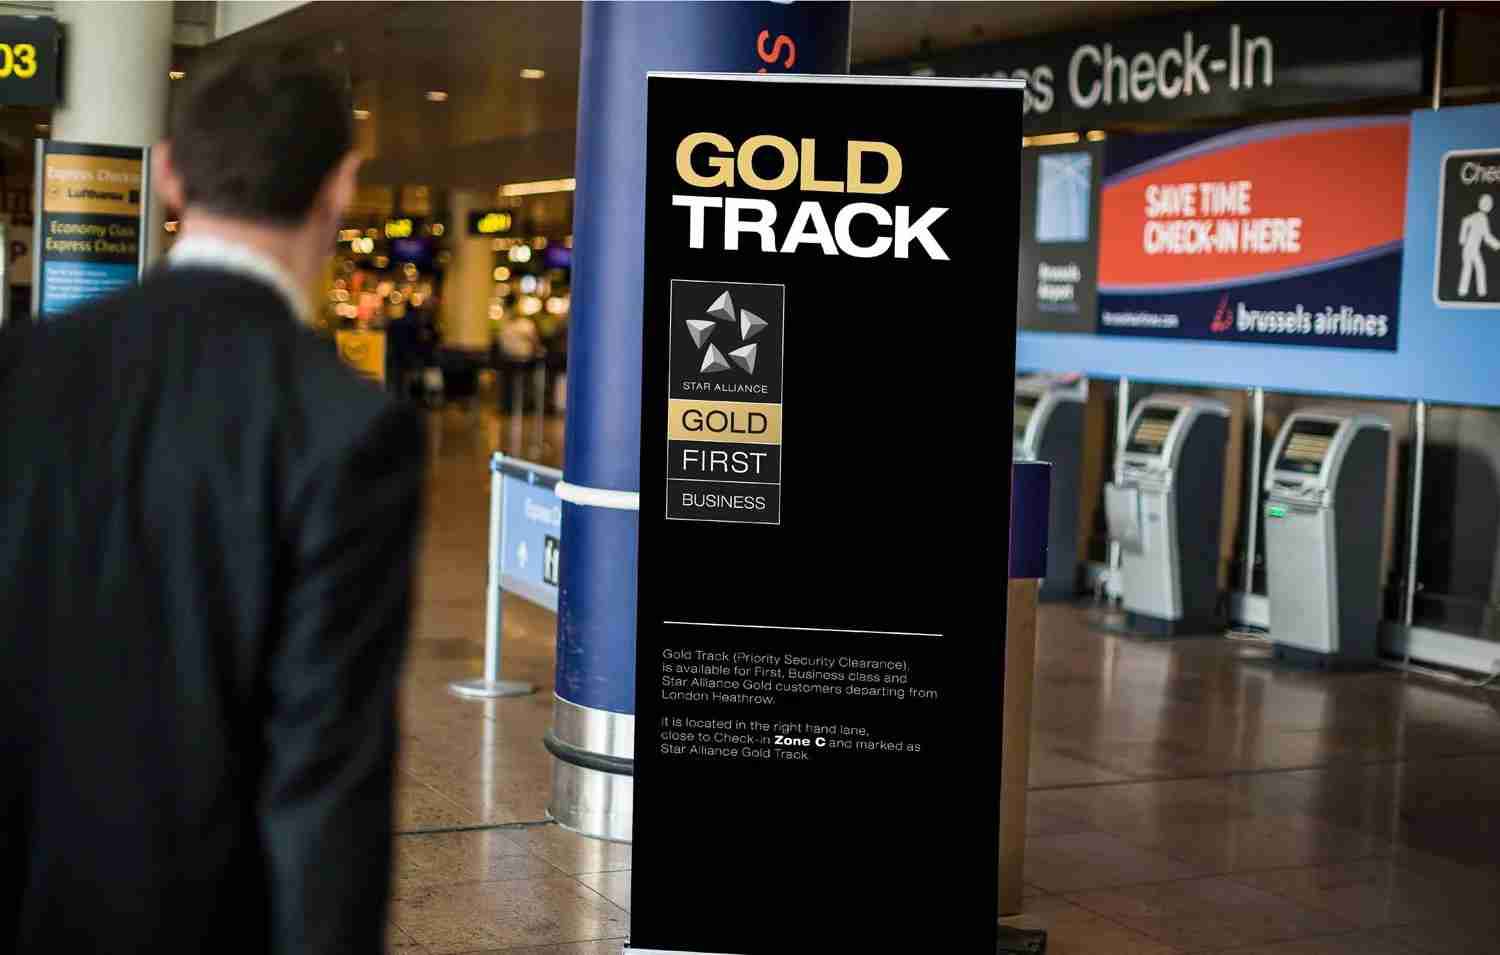 Star Alliance Gold Track as seen in the ticketing and departures hall of an airport. (Image courtesy of Thai Airways)